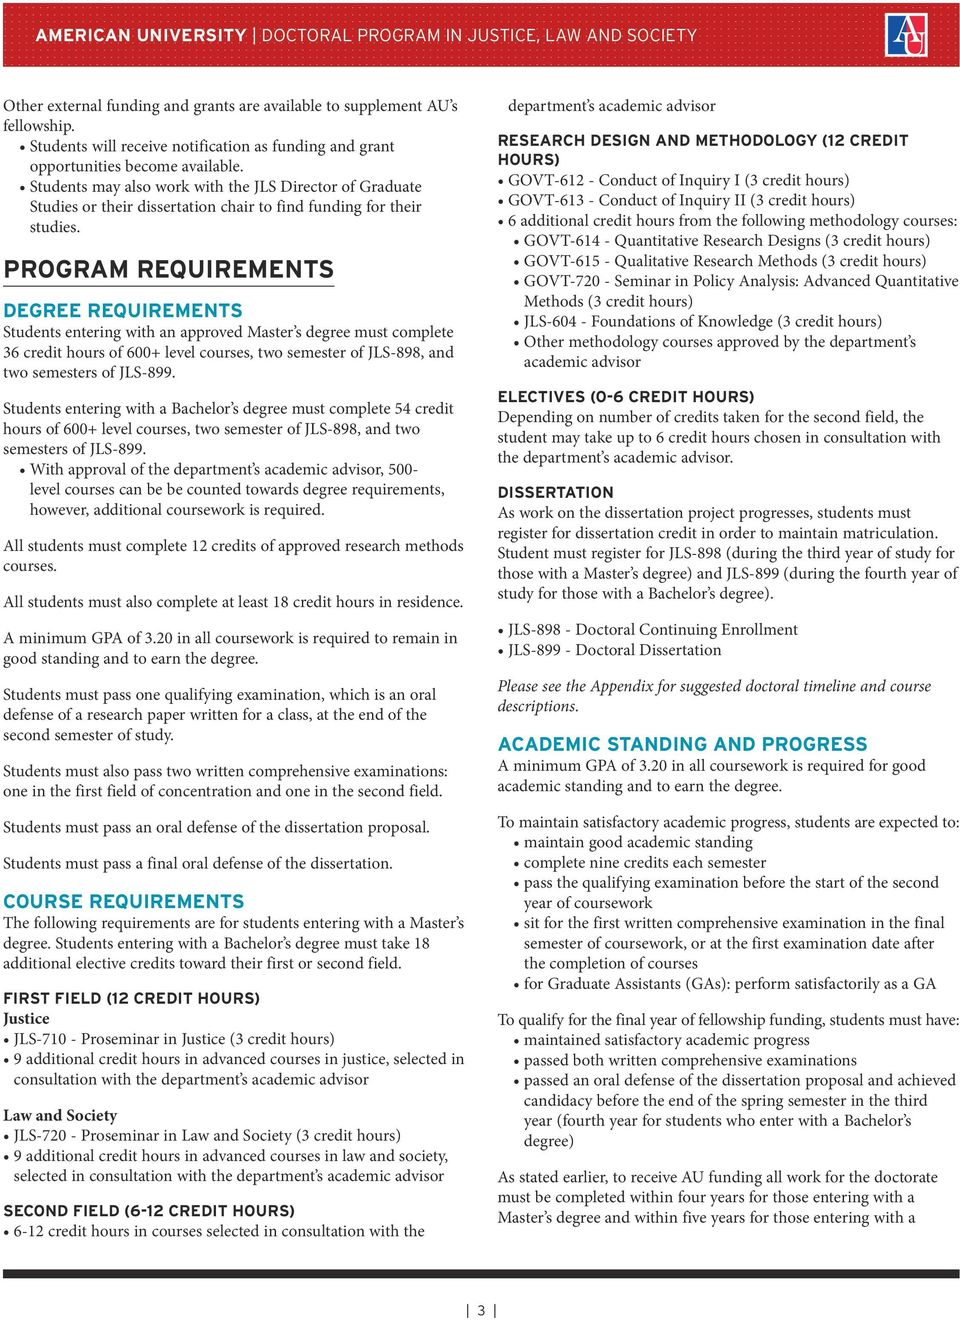 PROGRAM REQUIREMENTS DEGREE REQUIREMENTS Students entering with an approved Master s degree must complete 36 credit hours of 600+ level courses, two semester of JLS-898, and two semesters of JLS-899.